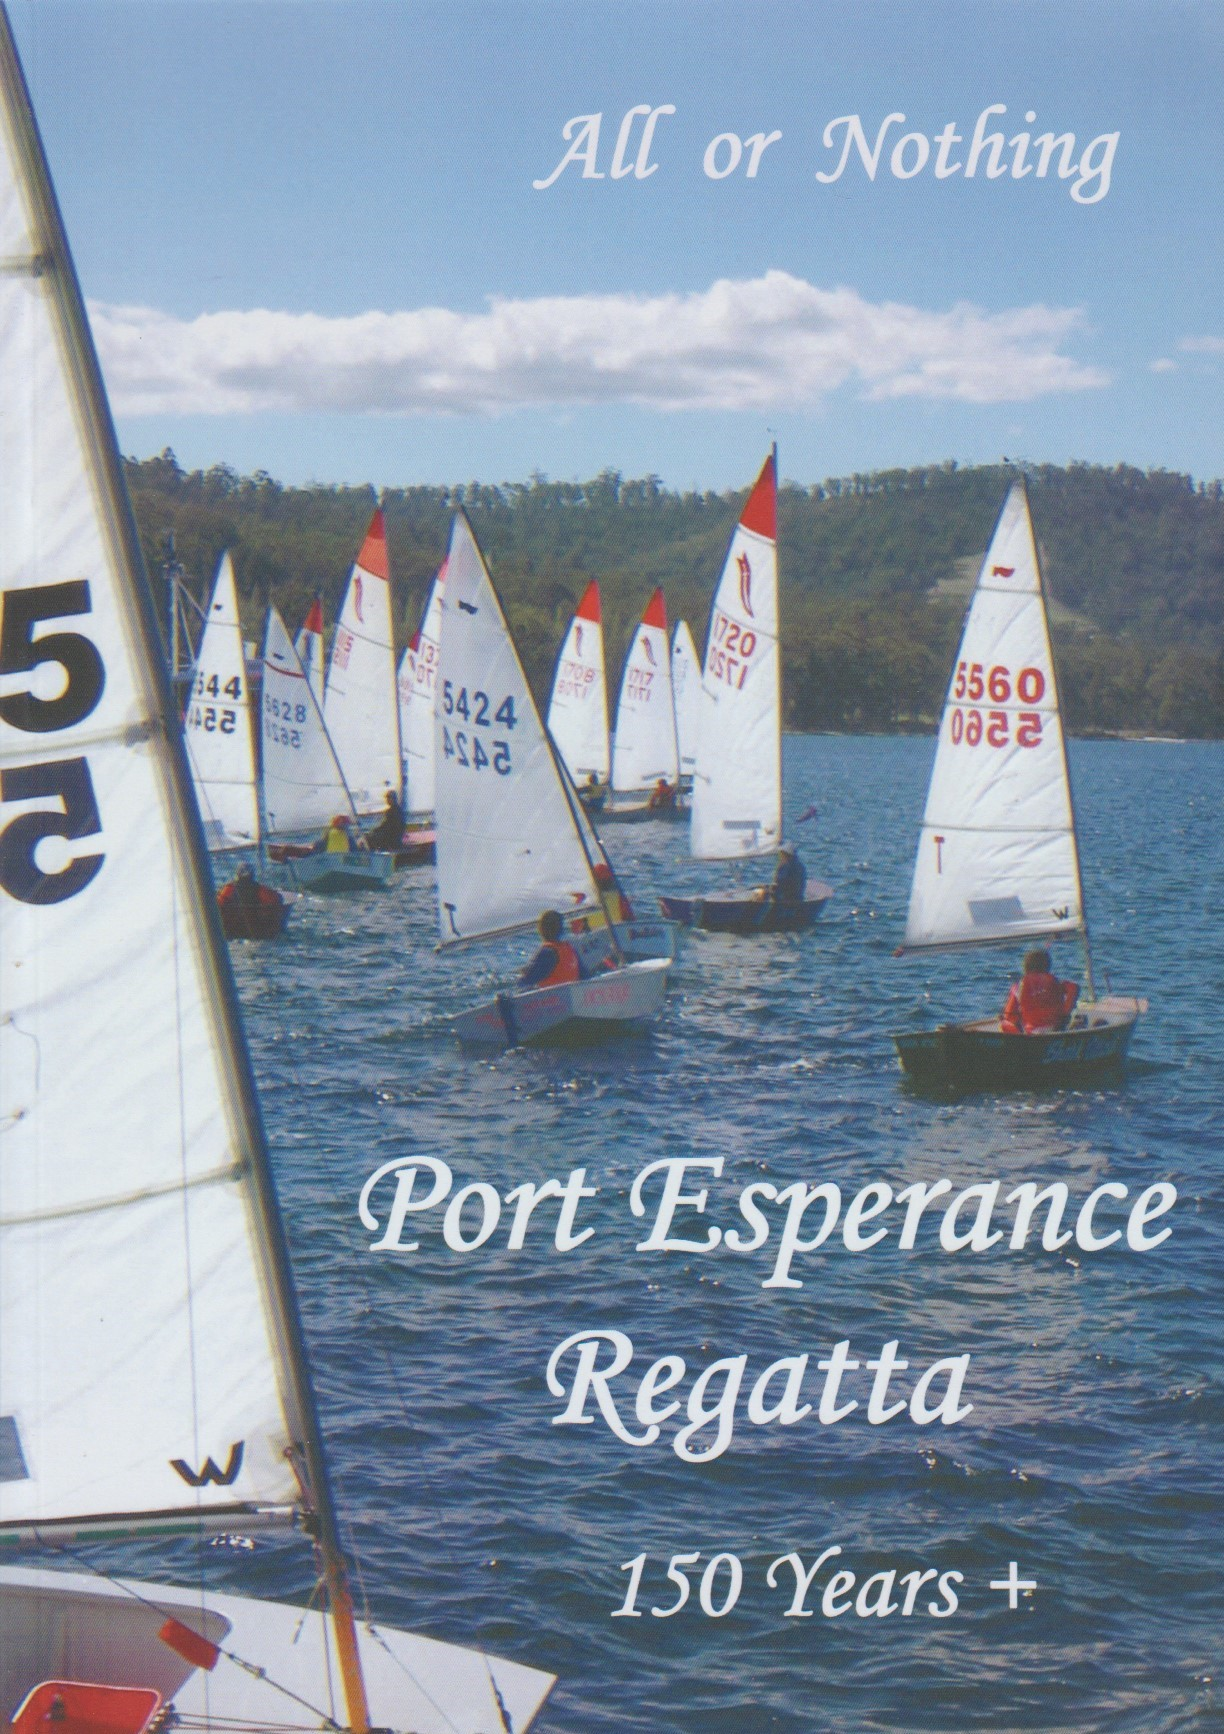 All or Nothing - Celebrating 150+ years of the Port Esperance Regatta